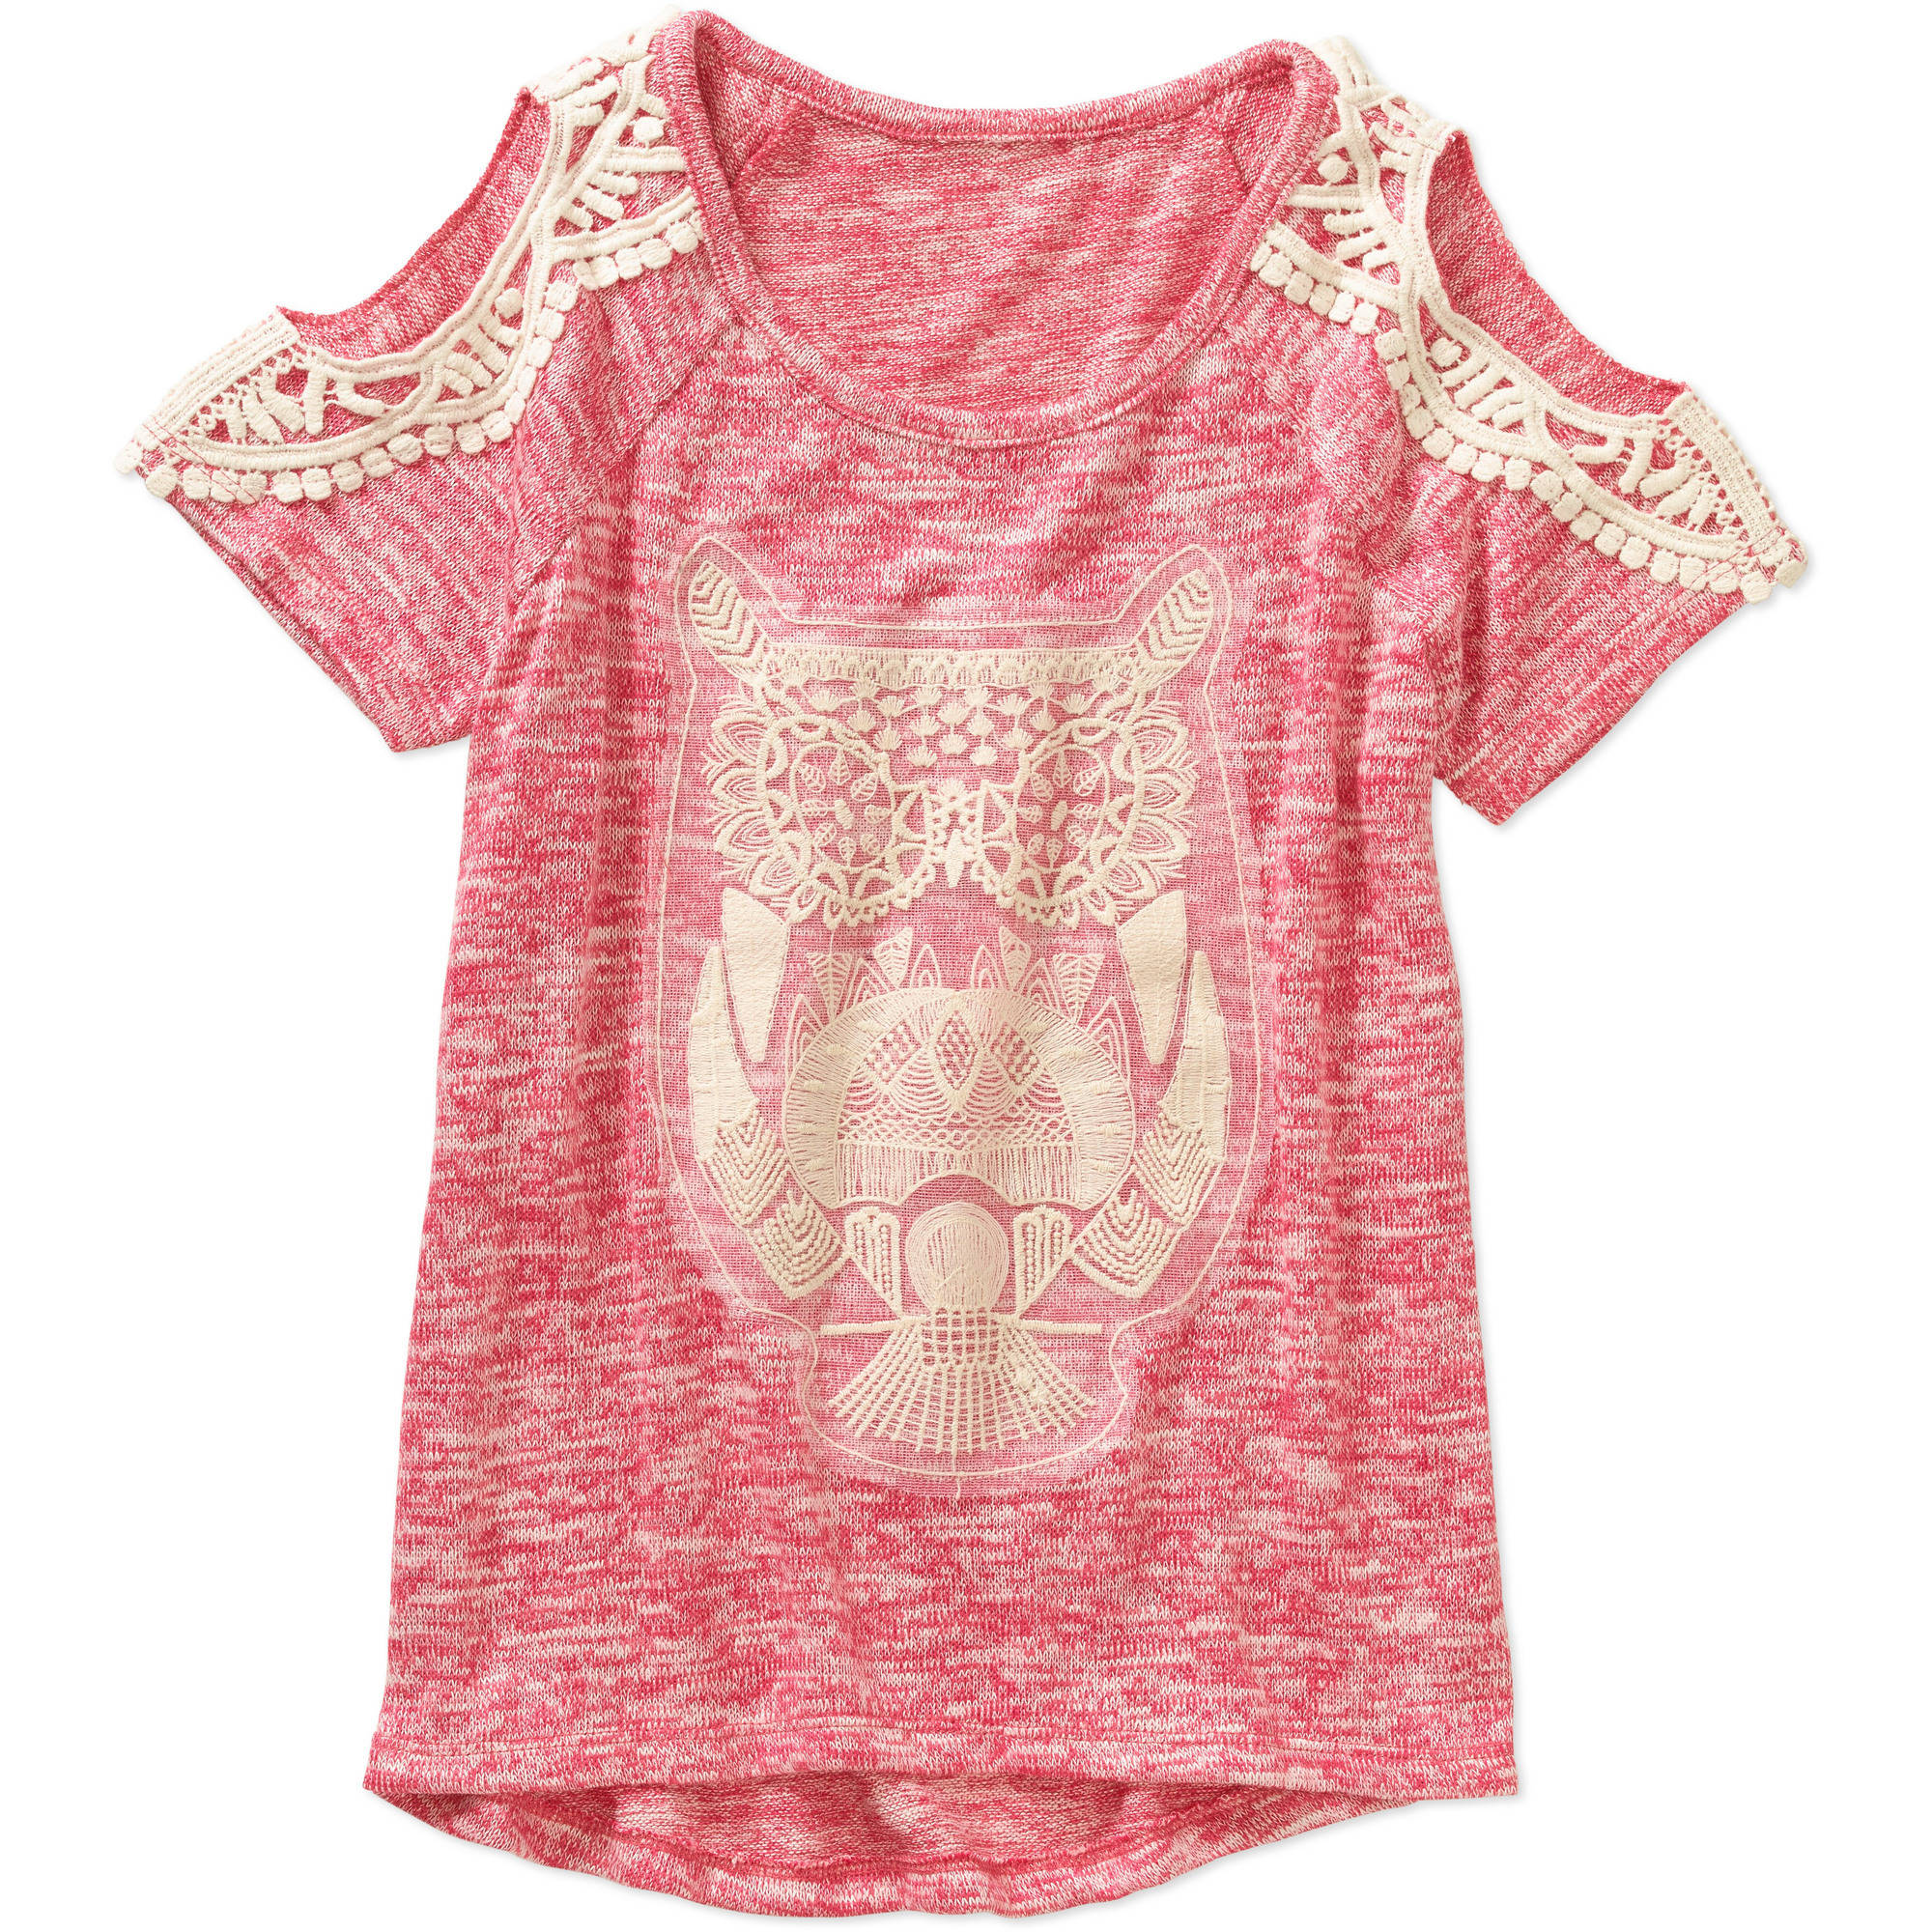 Miss Chievous Girls' Short Sleeve Cold Shoulder Crochet Owl Top